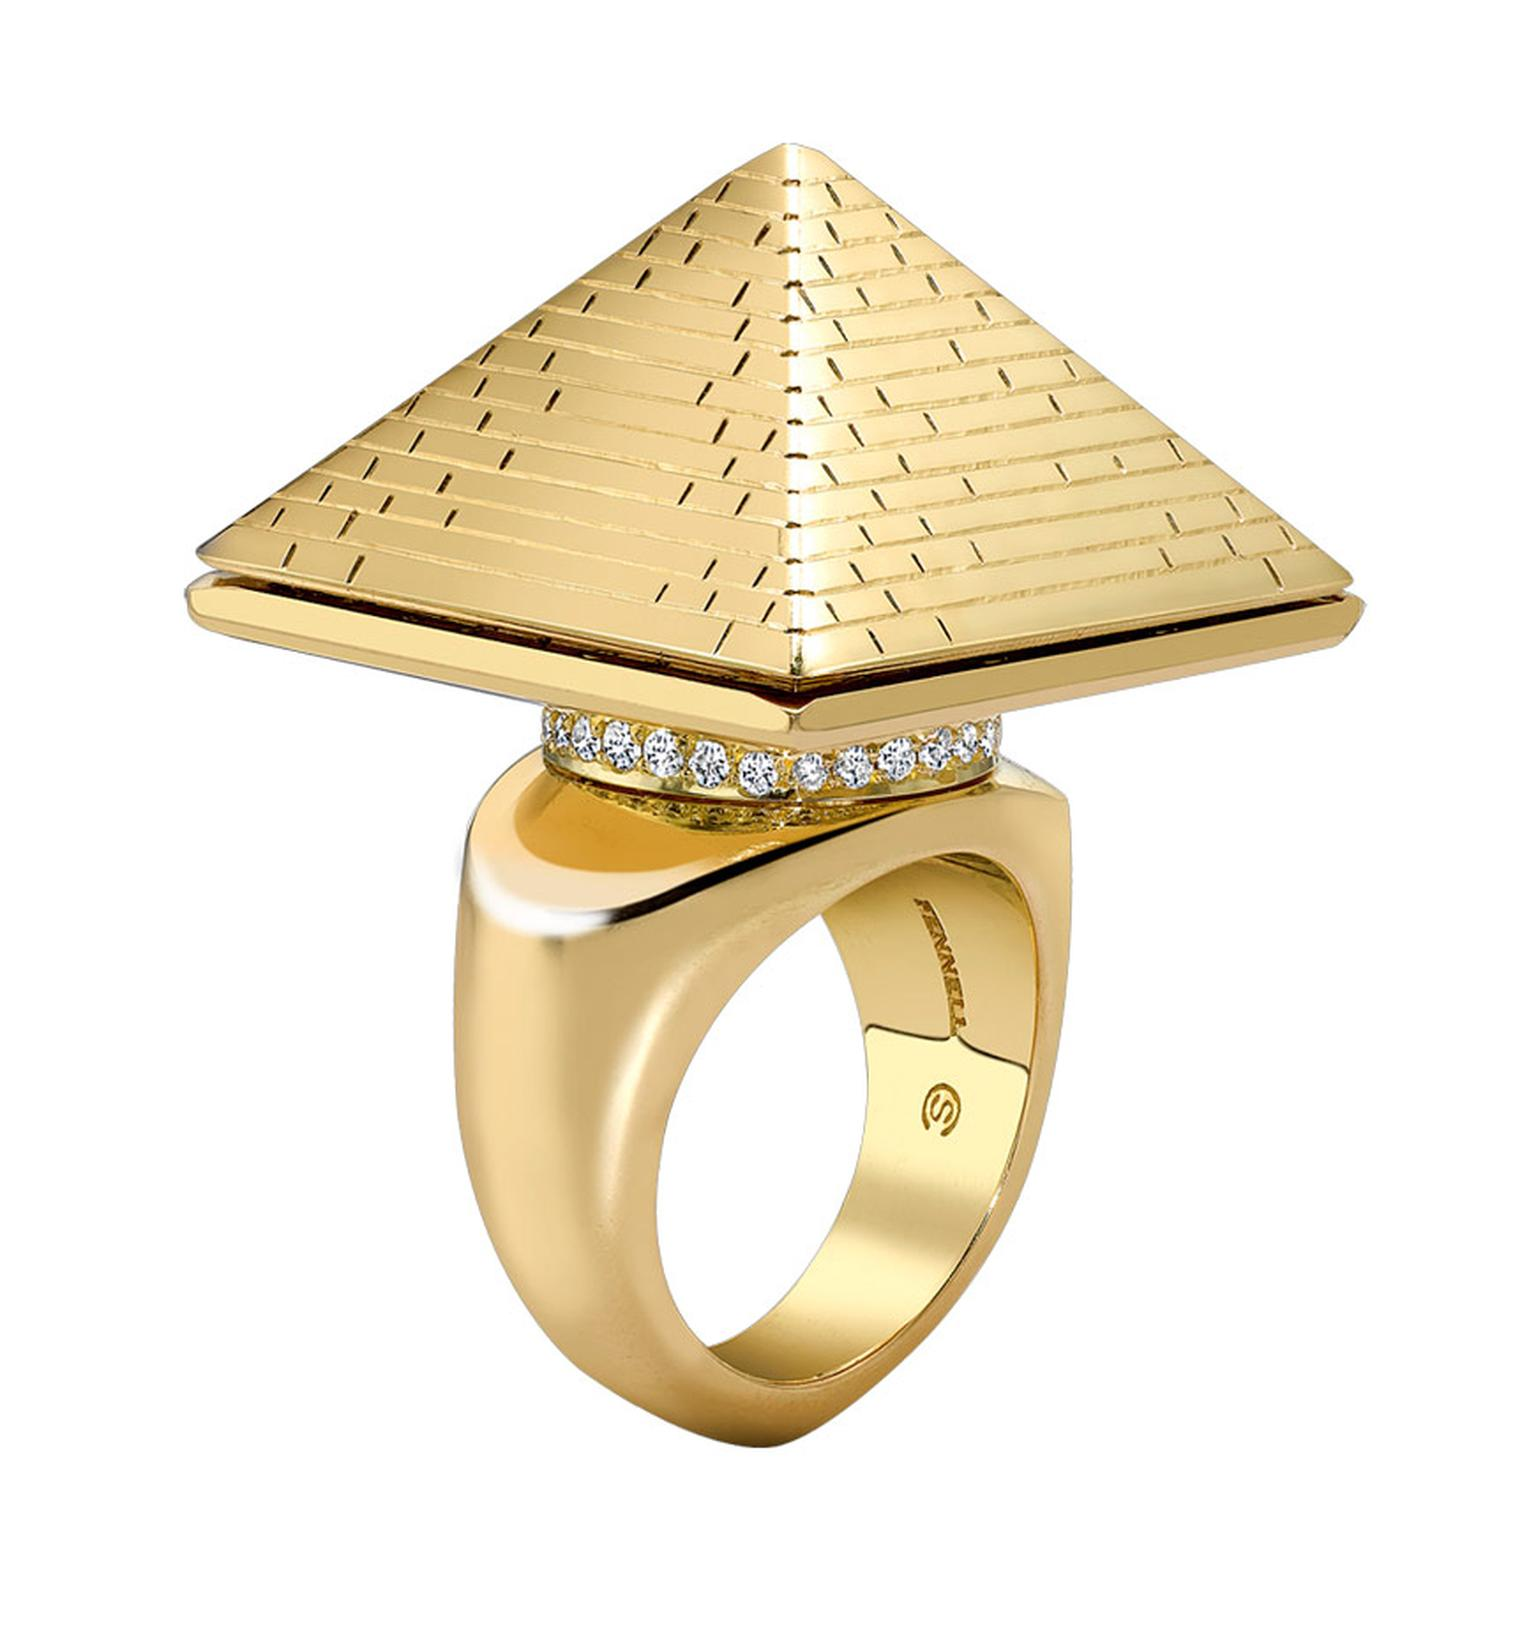 Theo-Fennell-Pyramid-Ring